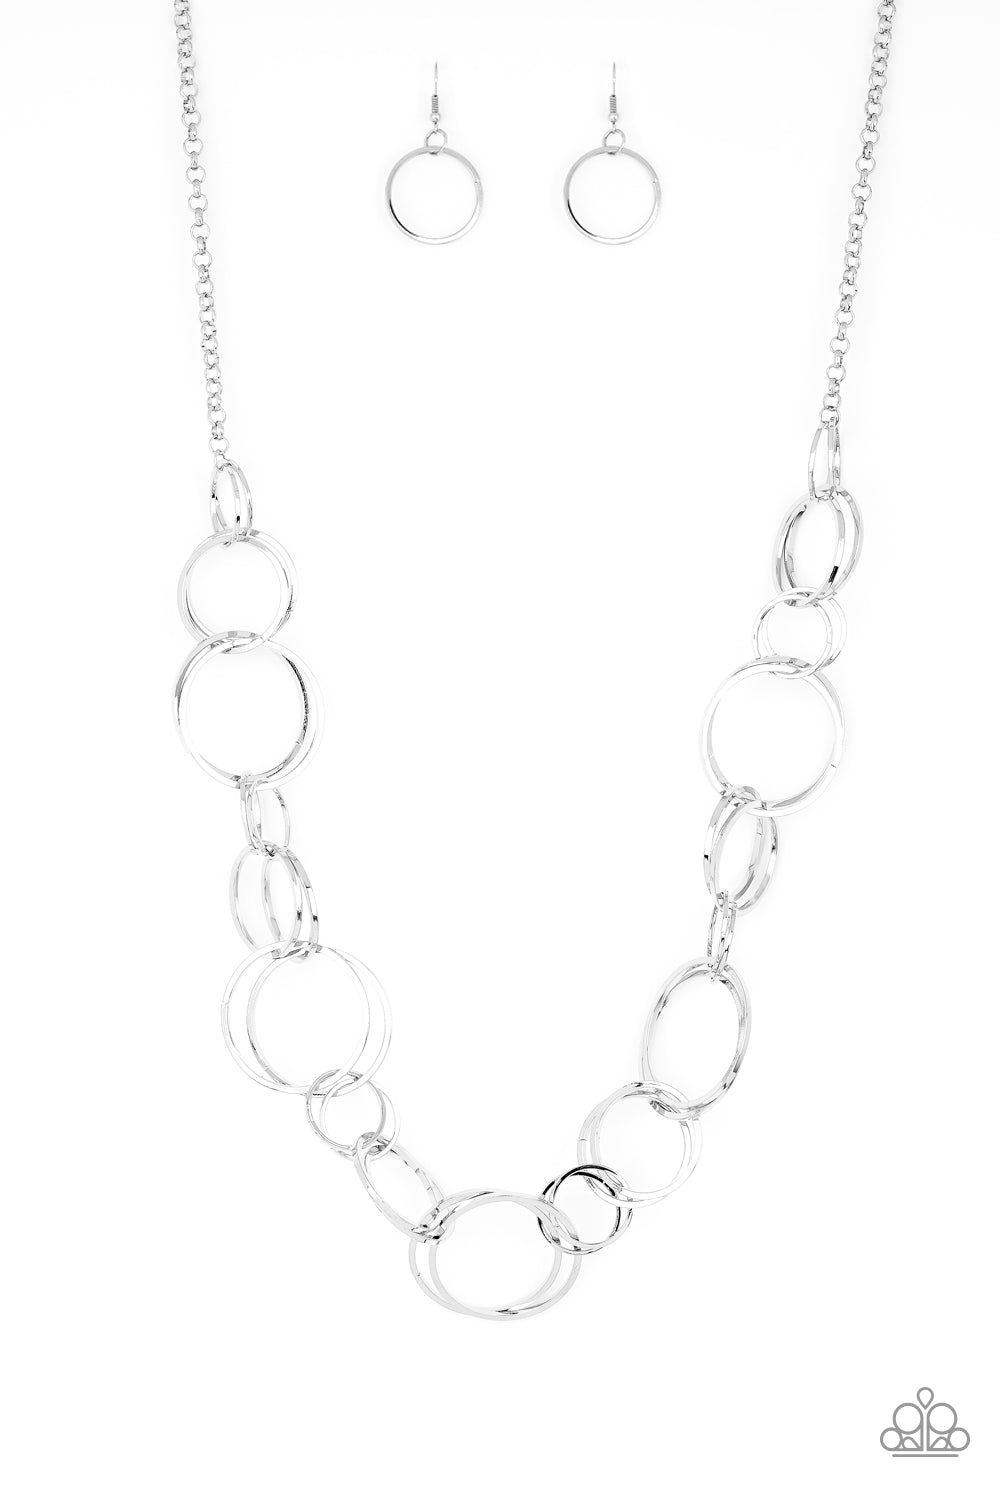 Natural-Born RINGLEADER Silver Necklace